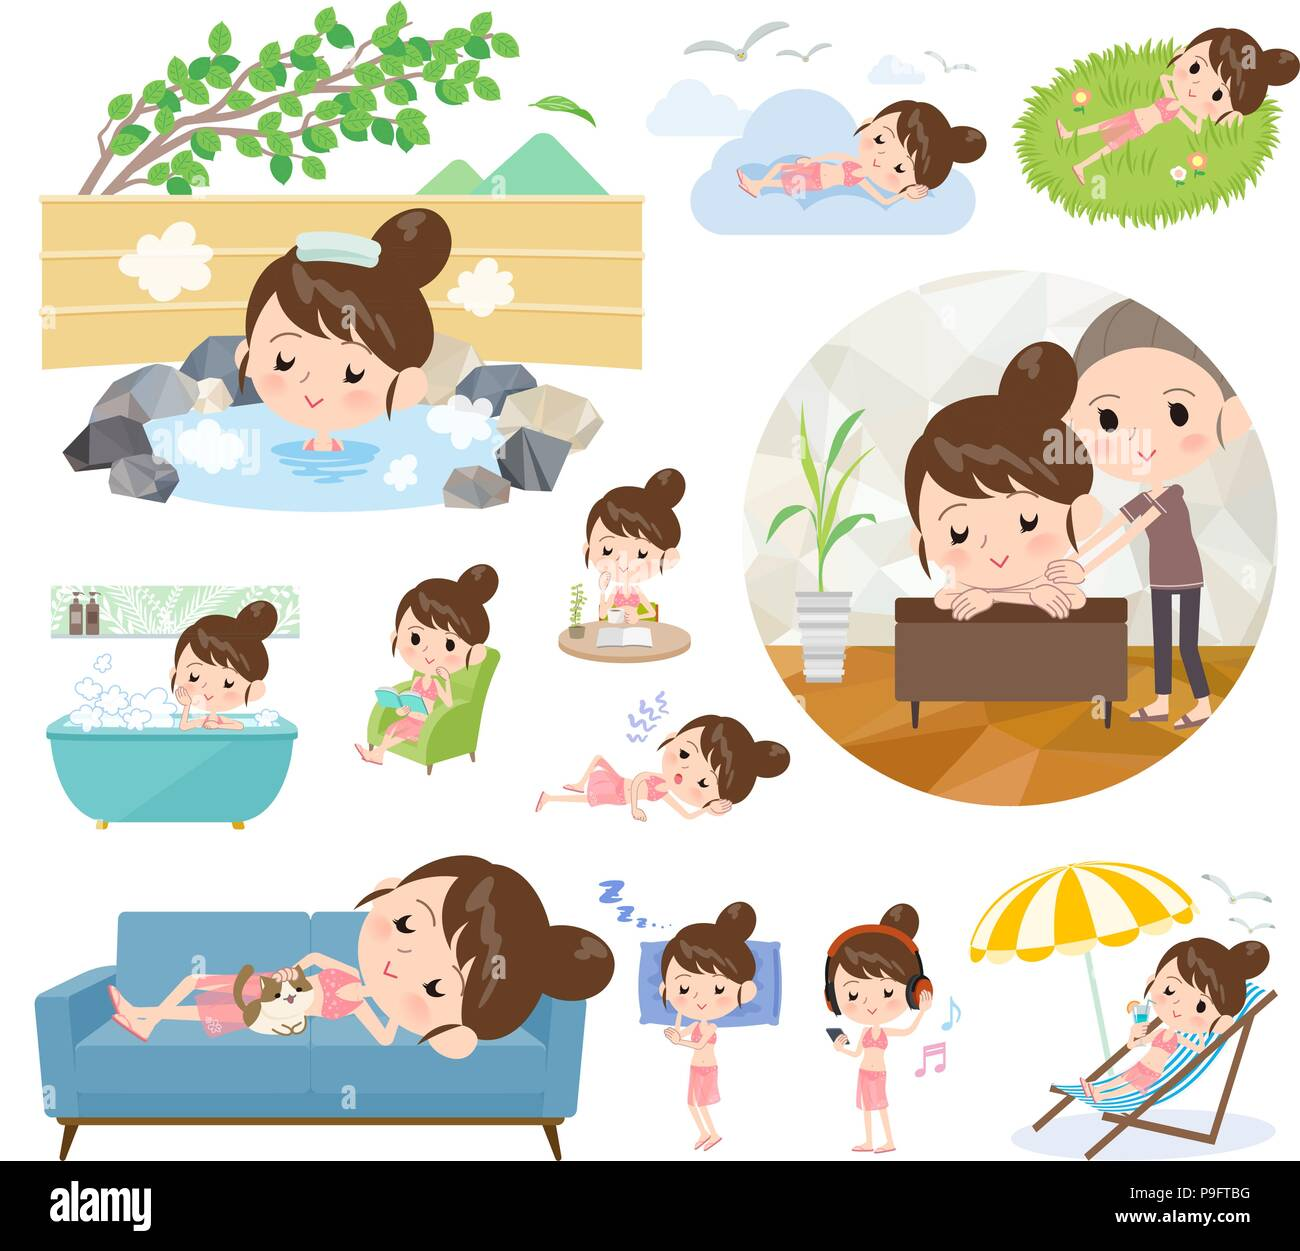 A set of swimwear style women about relaxing.There are actions such as vacation and stress relief.It's vector art so it's easy to edit. - Stock Vector